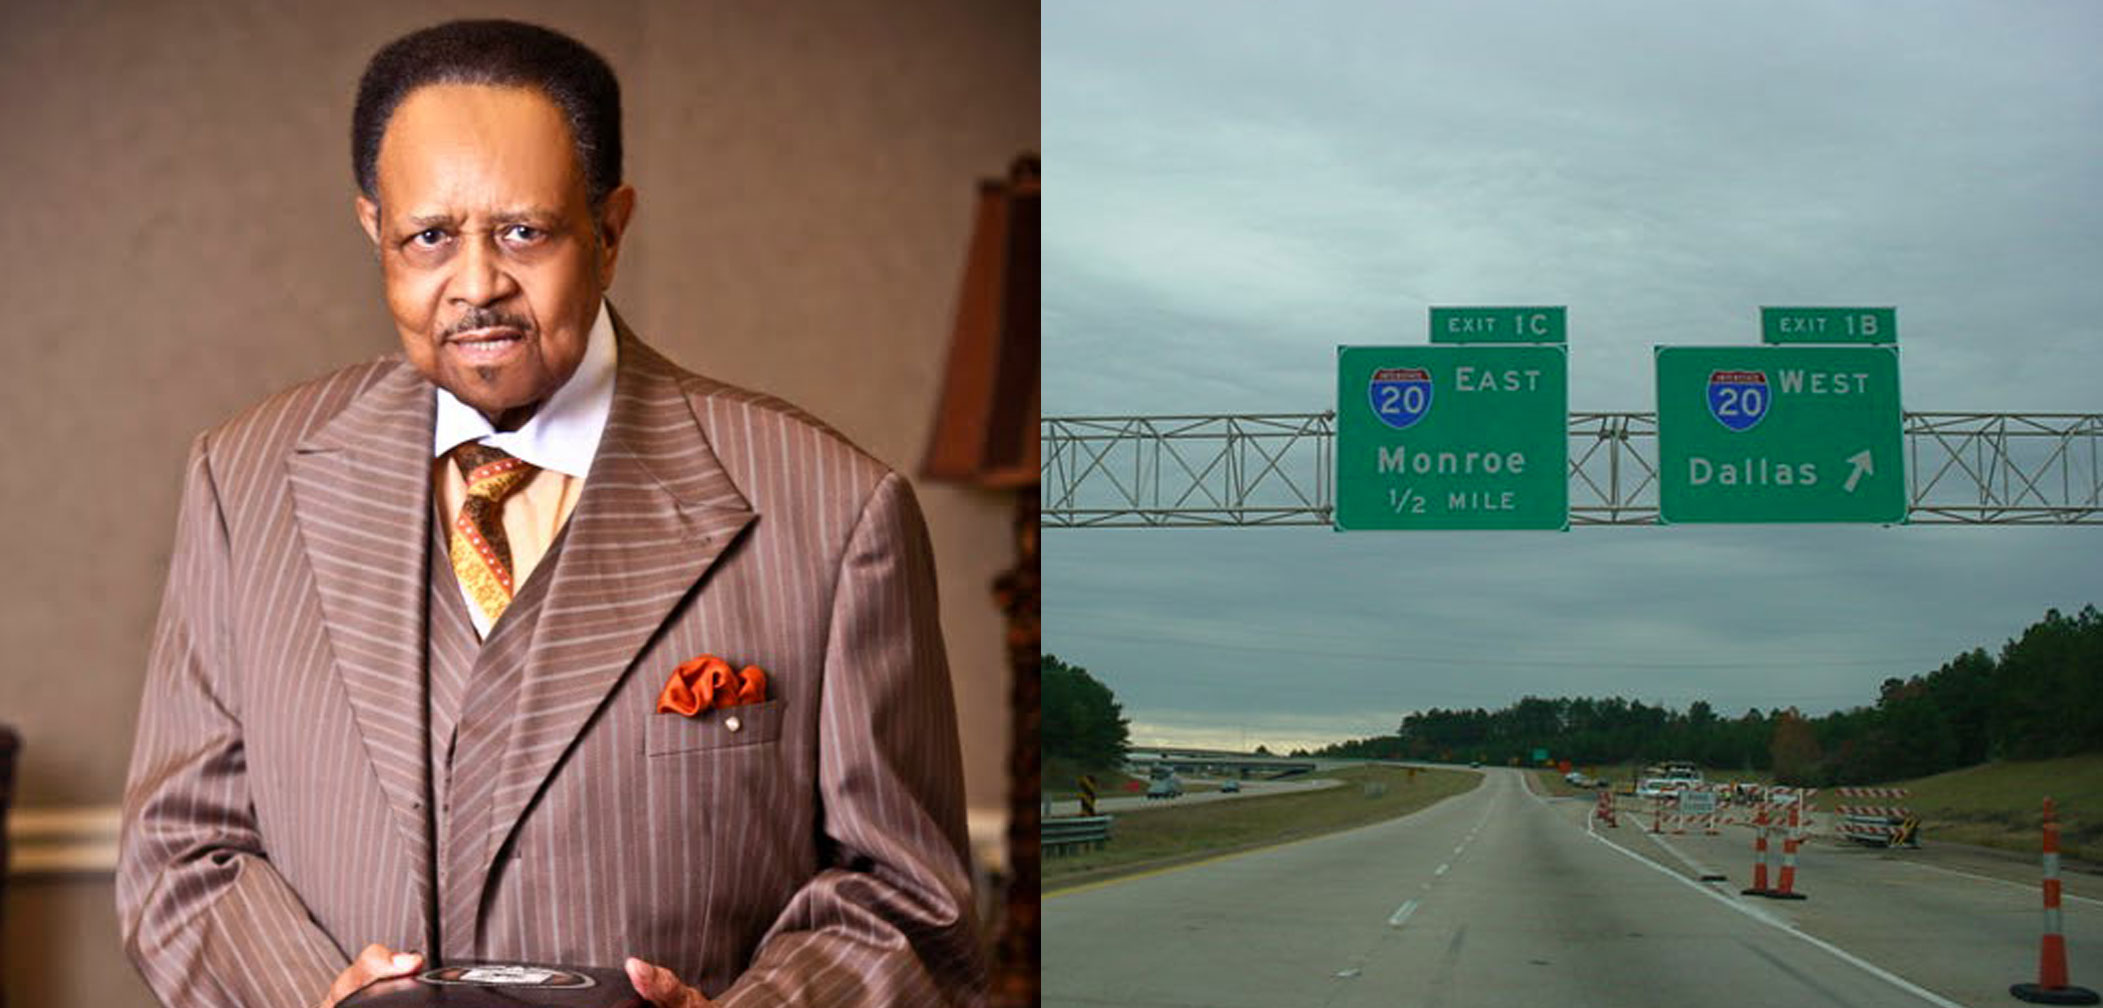 Texas Might Name a Highway After an Anti-Gay Preacher